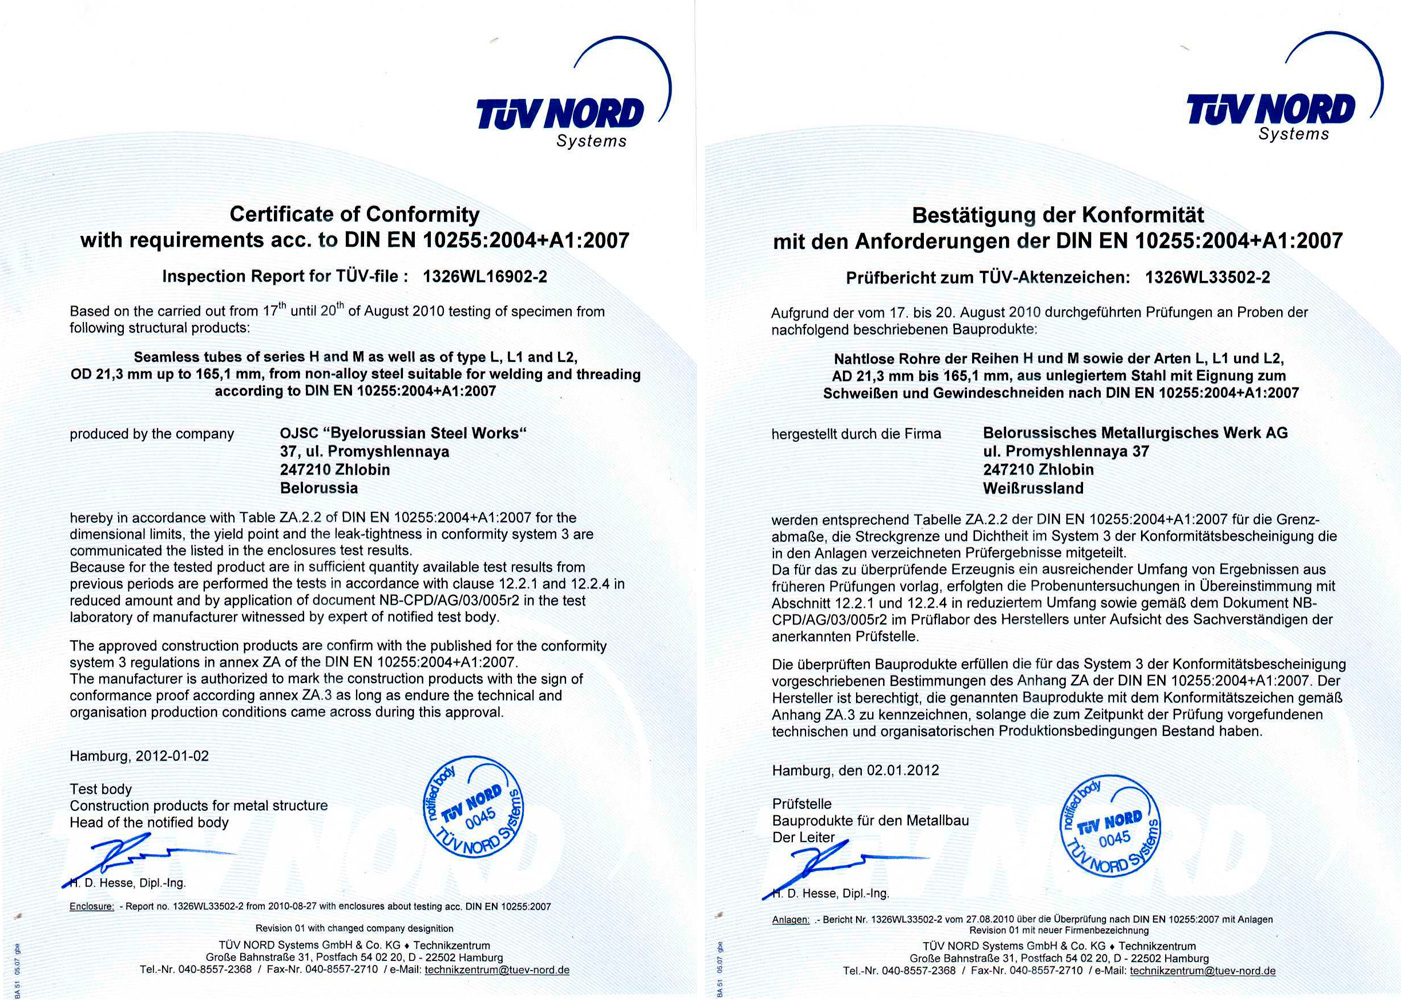 Certificate of compliance of TUV NORD, Germany from August 30, 2010, for the right to apply CE-mark on seamless pipes series H and M as well as on L, L1 and L2 type ø 21,3-165,1mm of non-alloy steel for welding and threading according to the requirements of DIN EN 10255:2004+A1:2007